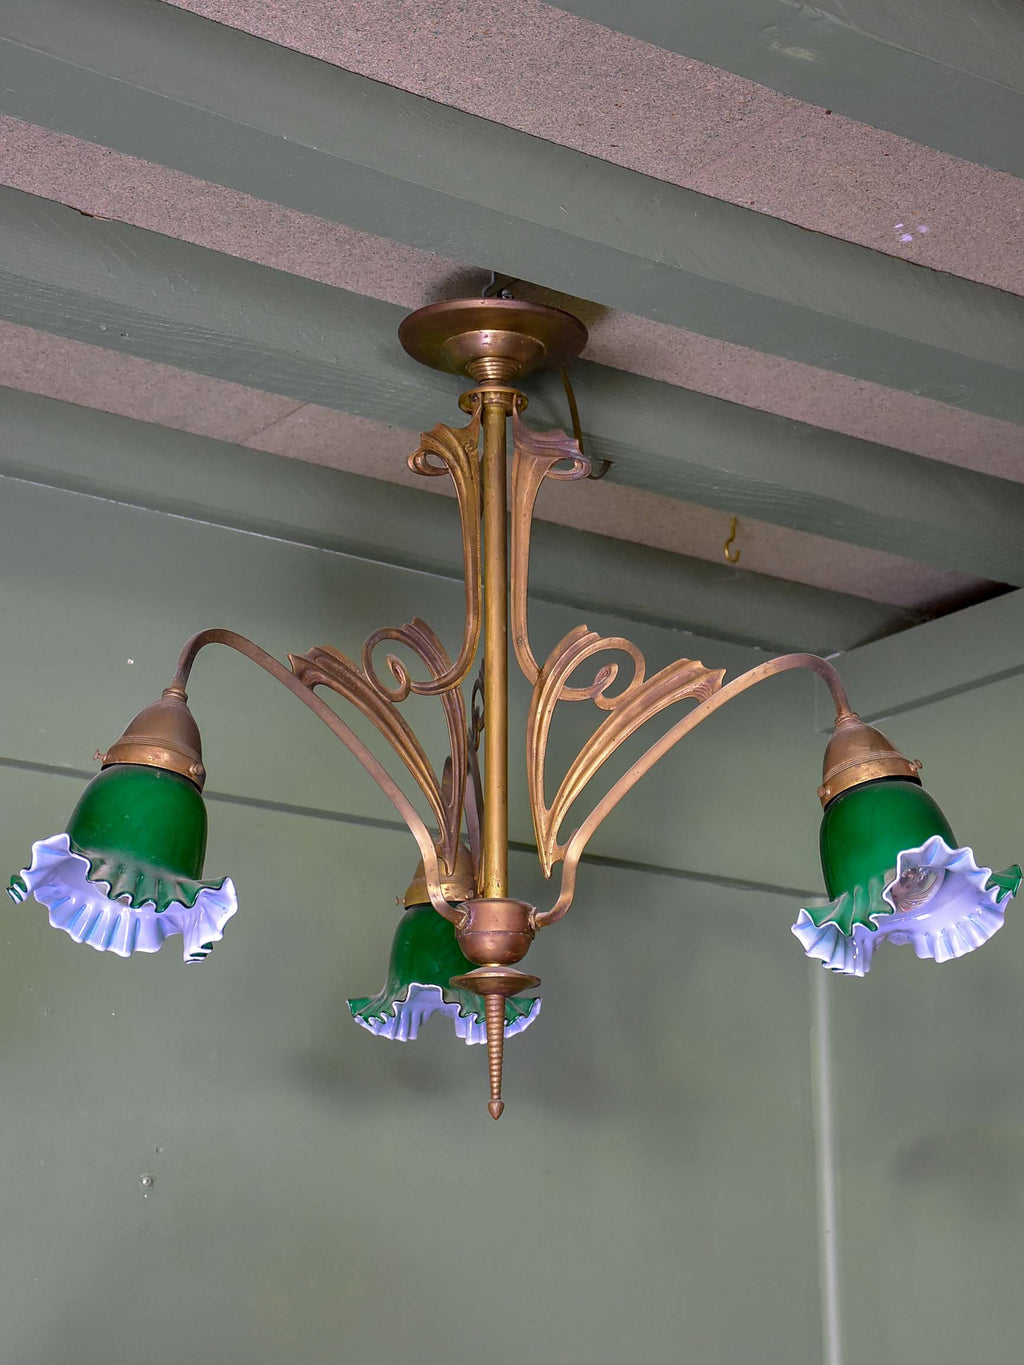 French Art Nouveau three light pendant with green glass lampshades